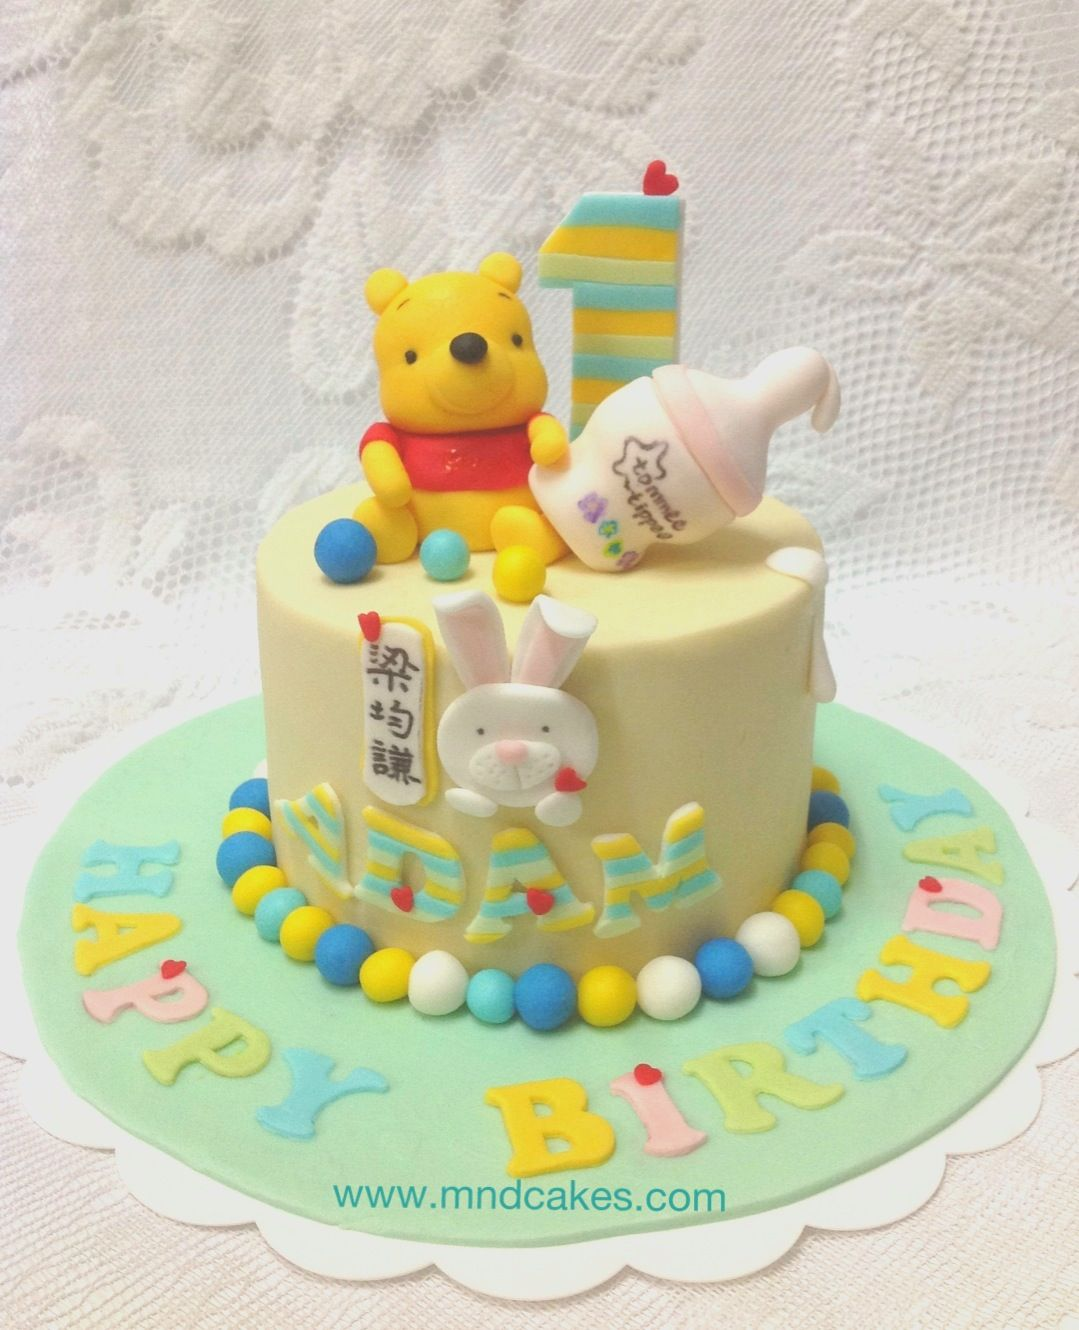 Cake Decorations For 1 Year Old : One Year Birthday Cakes for Girl one year old bunny ...